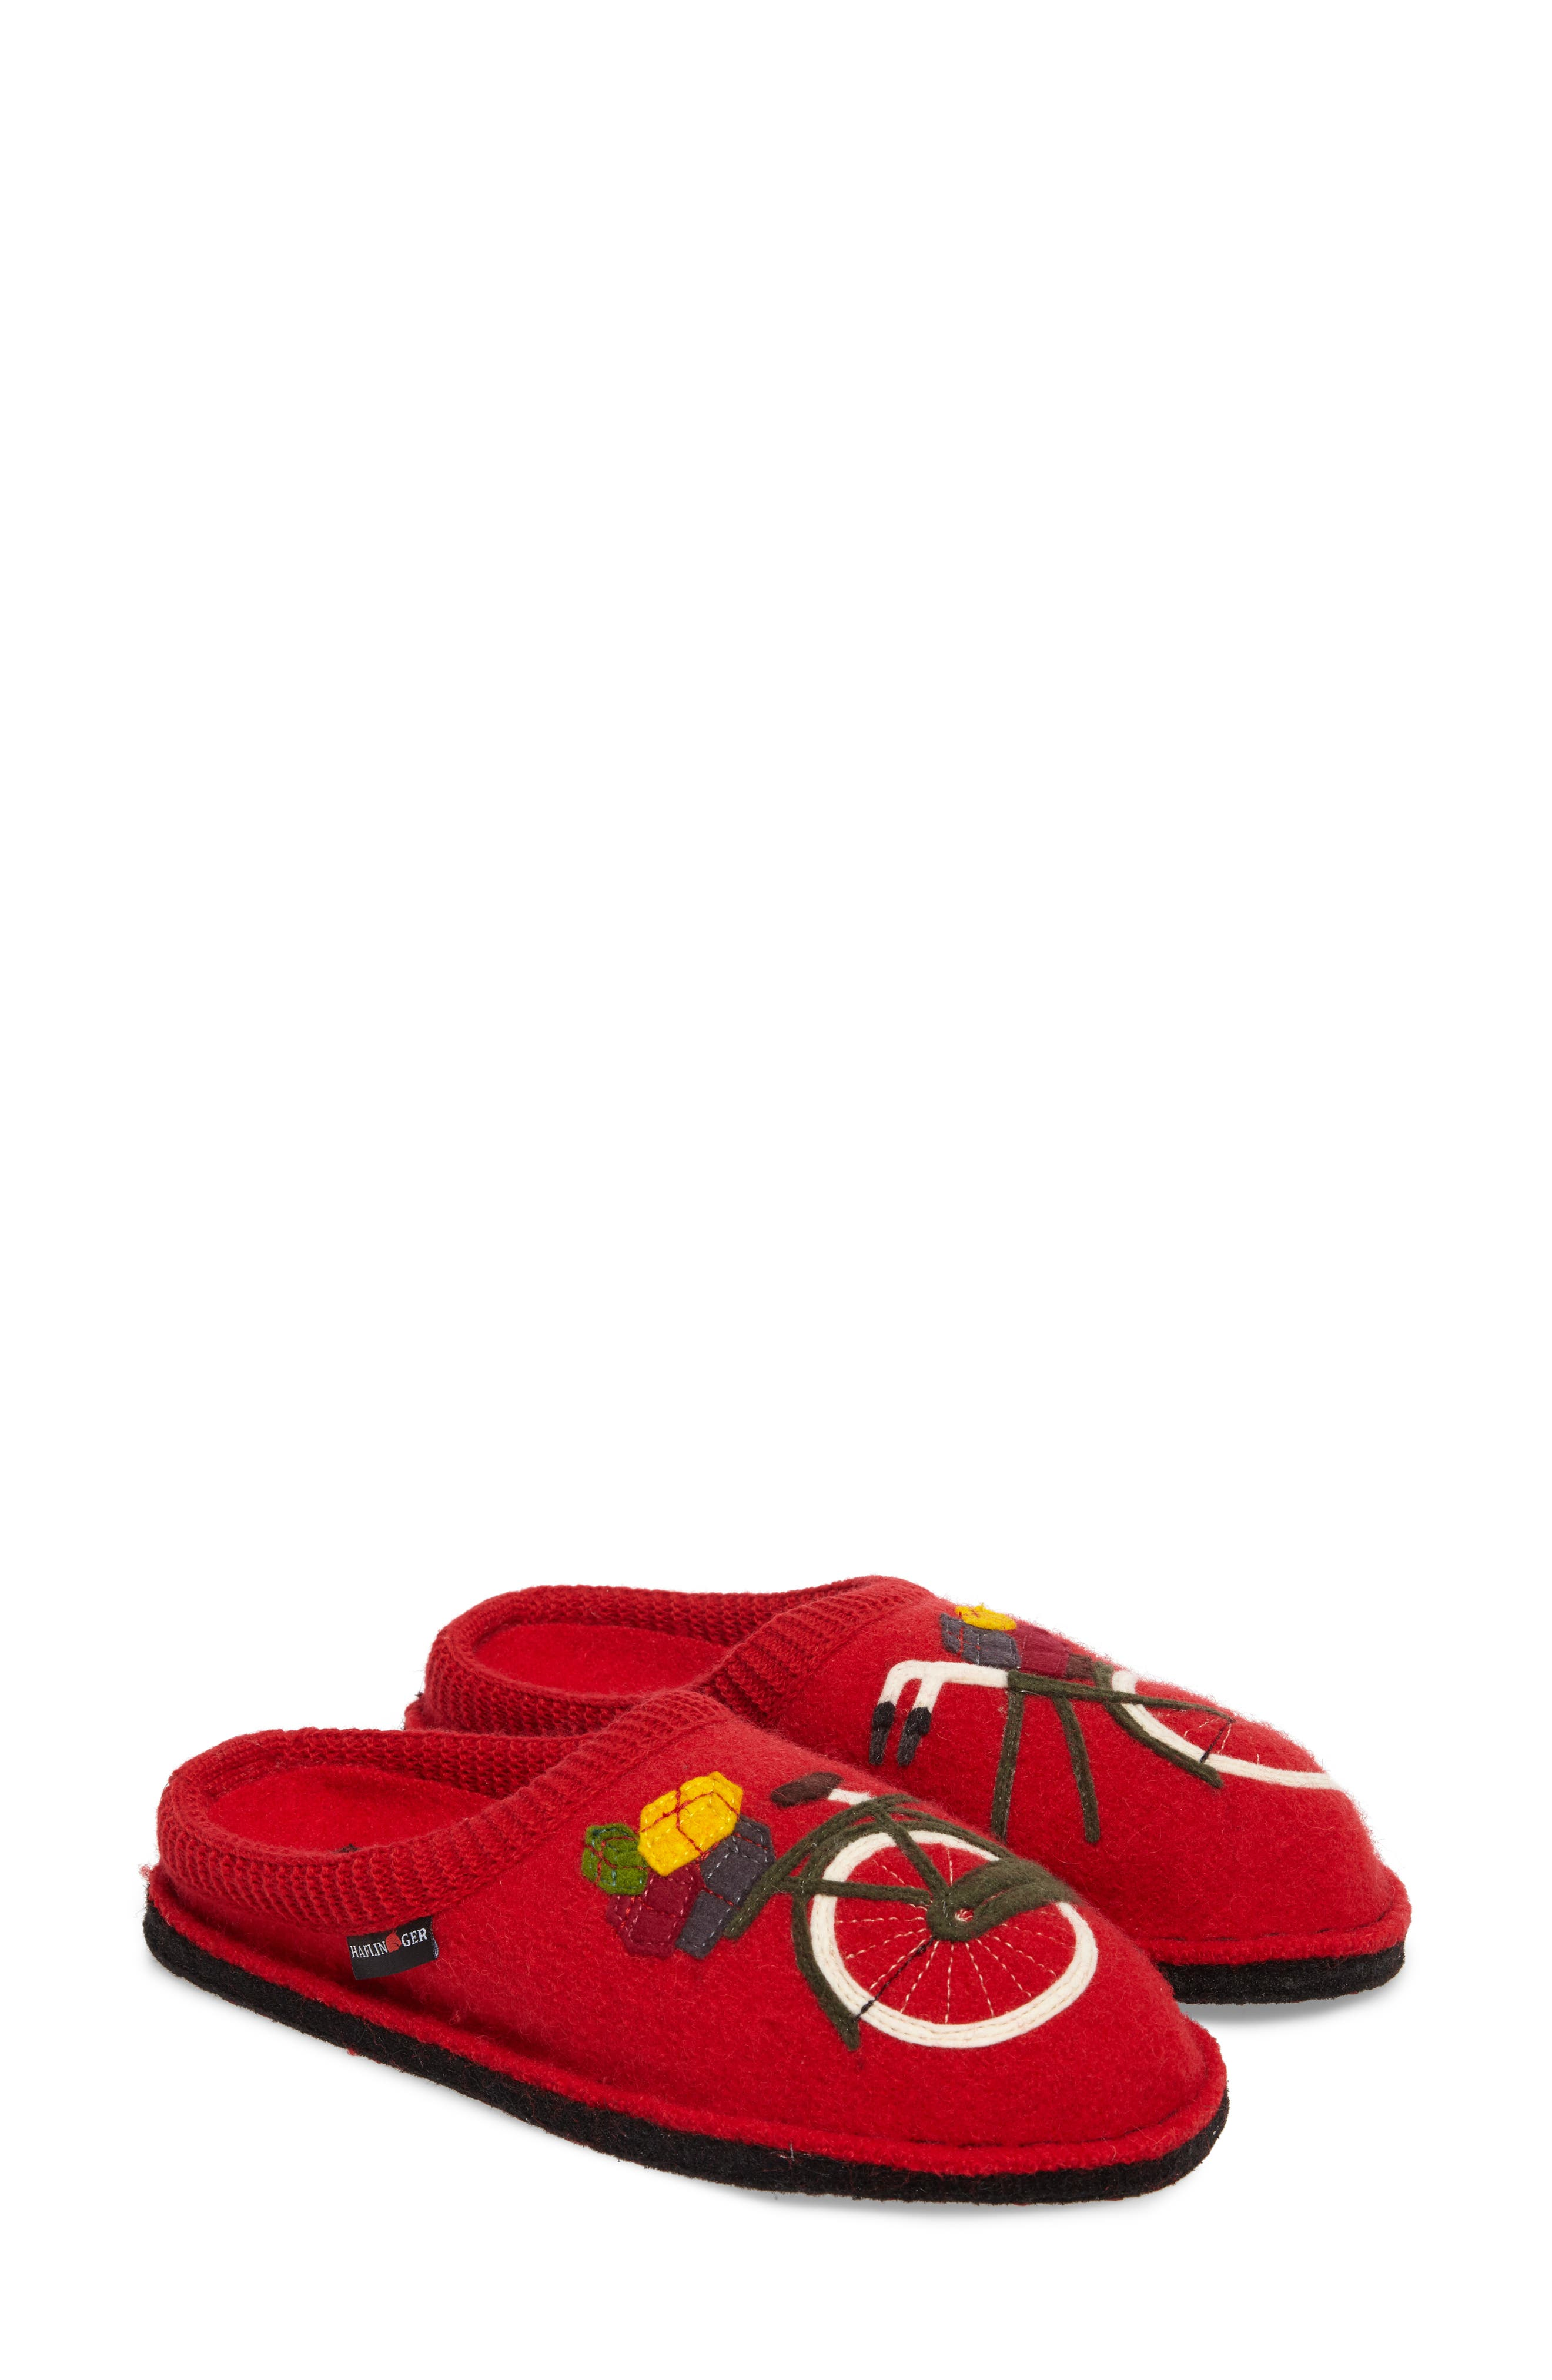 Bicycle Slipper,                             Alternate thumbnail 2, color,